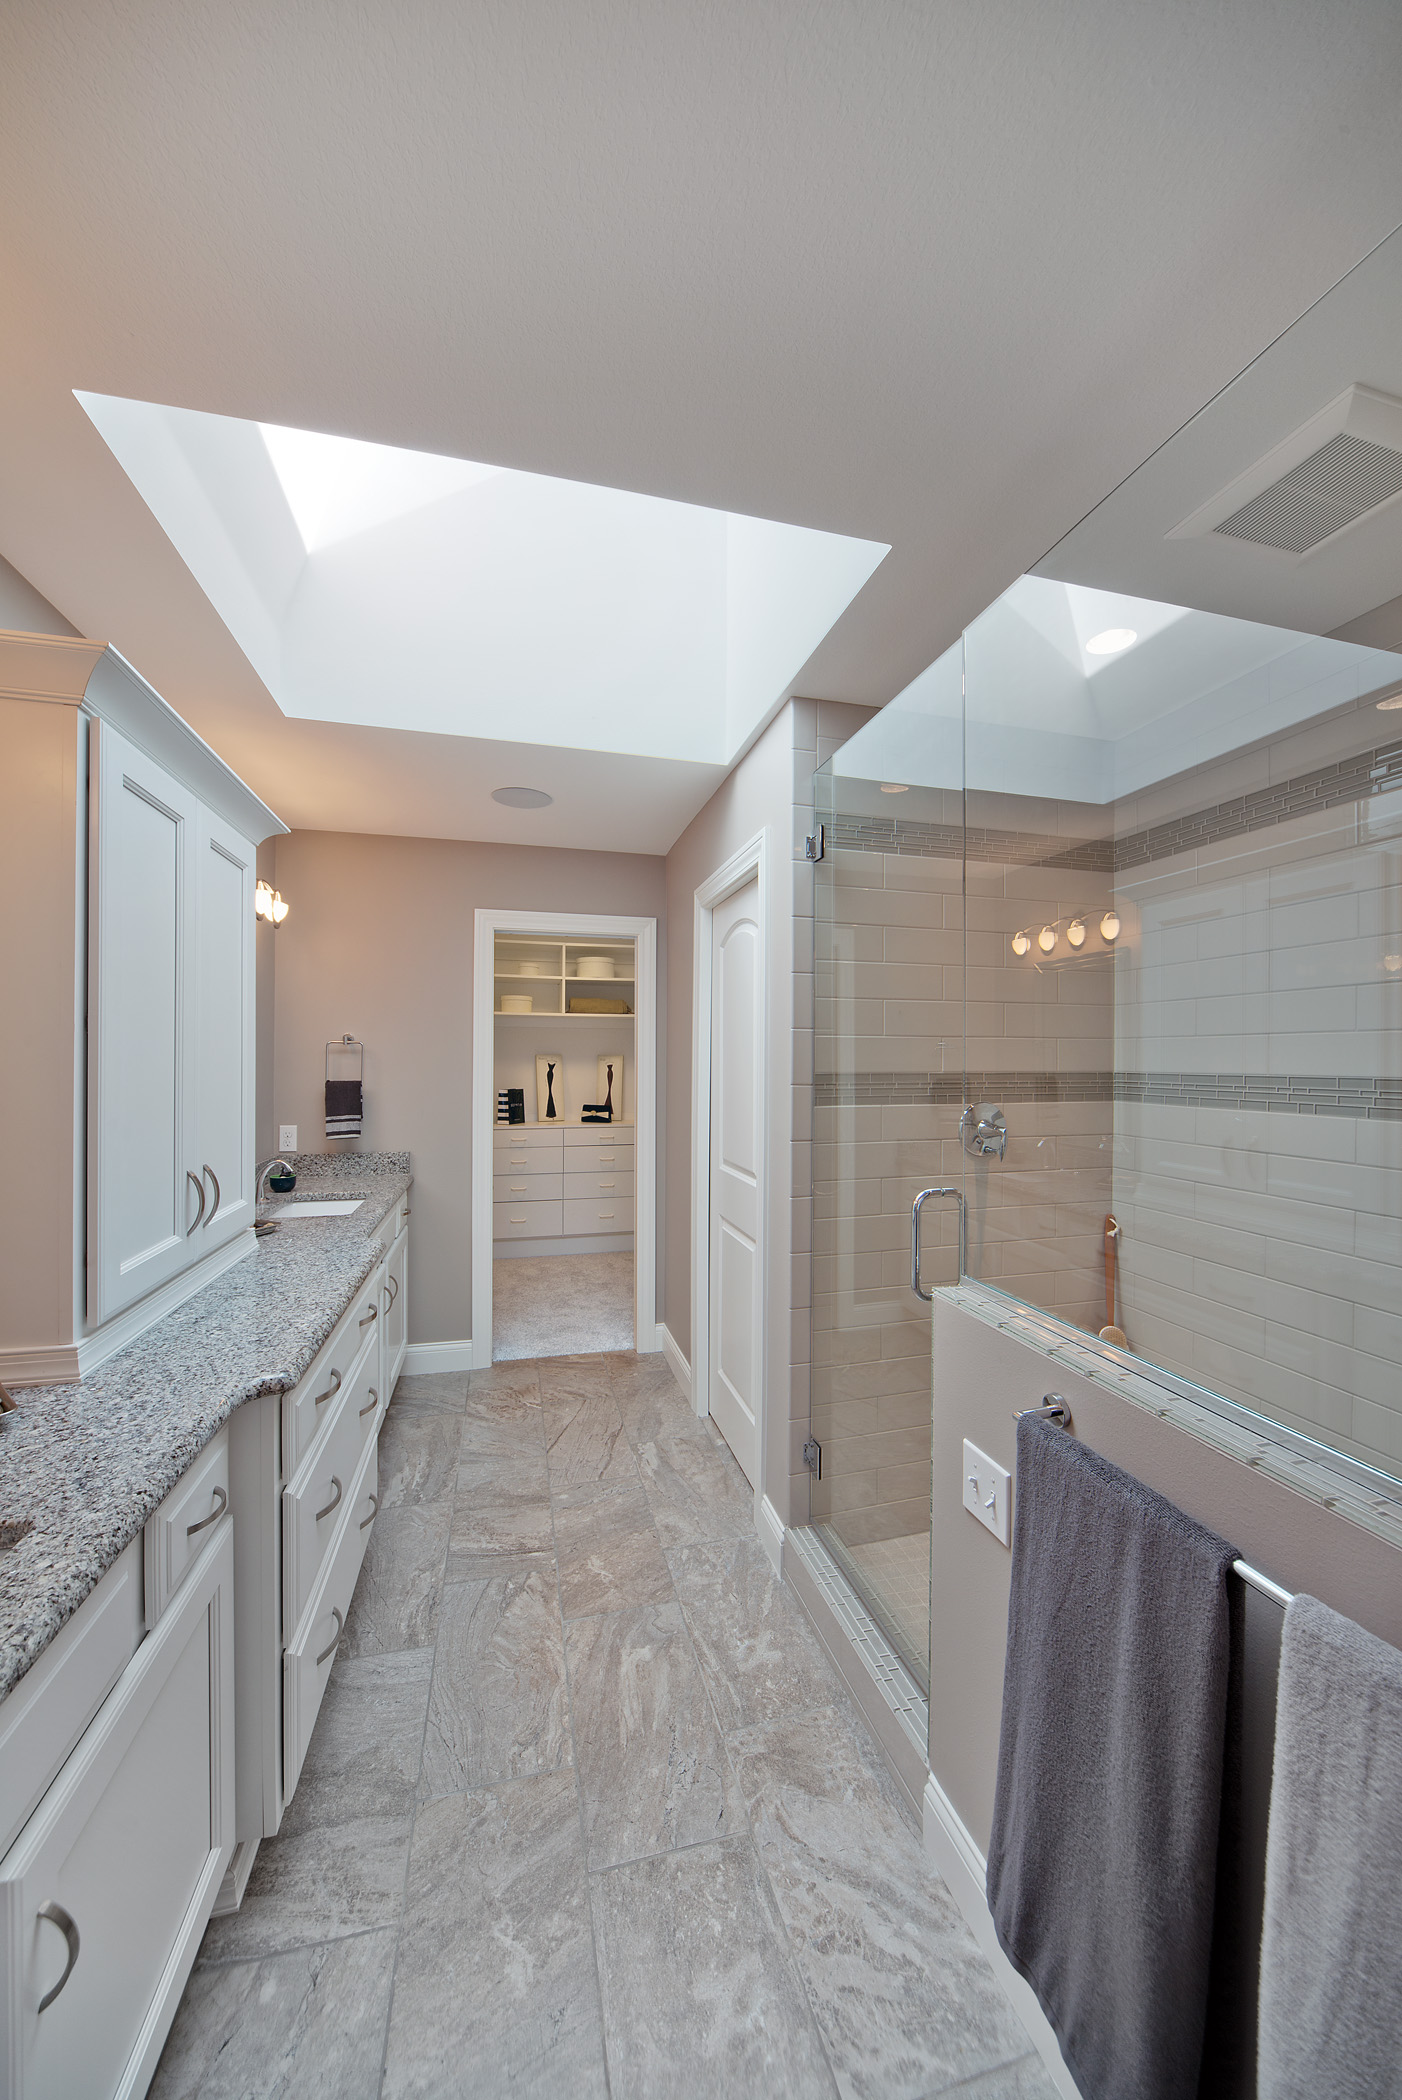 Large Frame-less Glass Showers